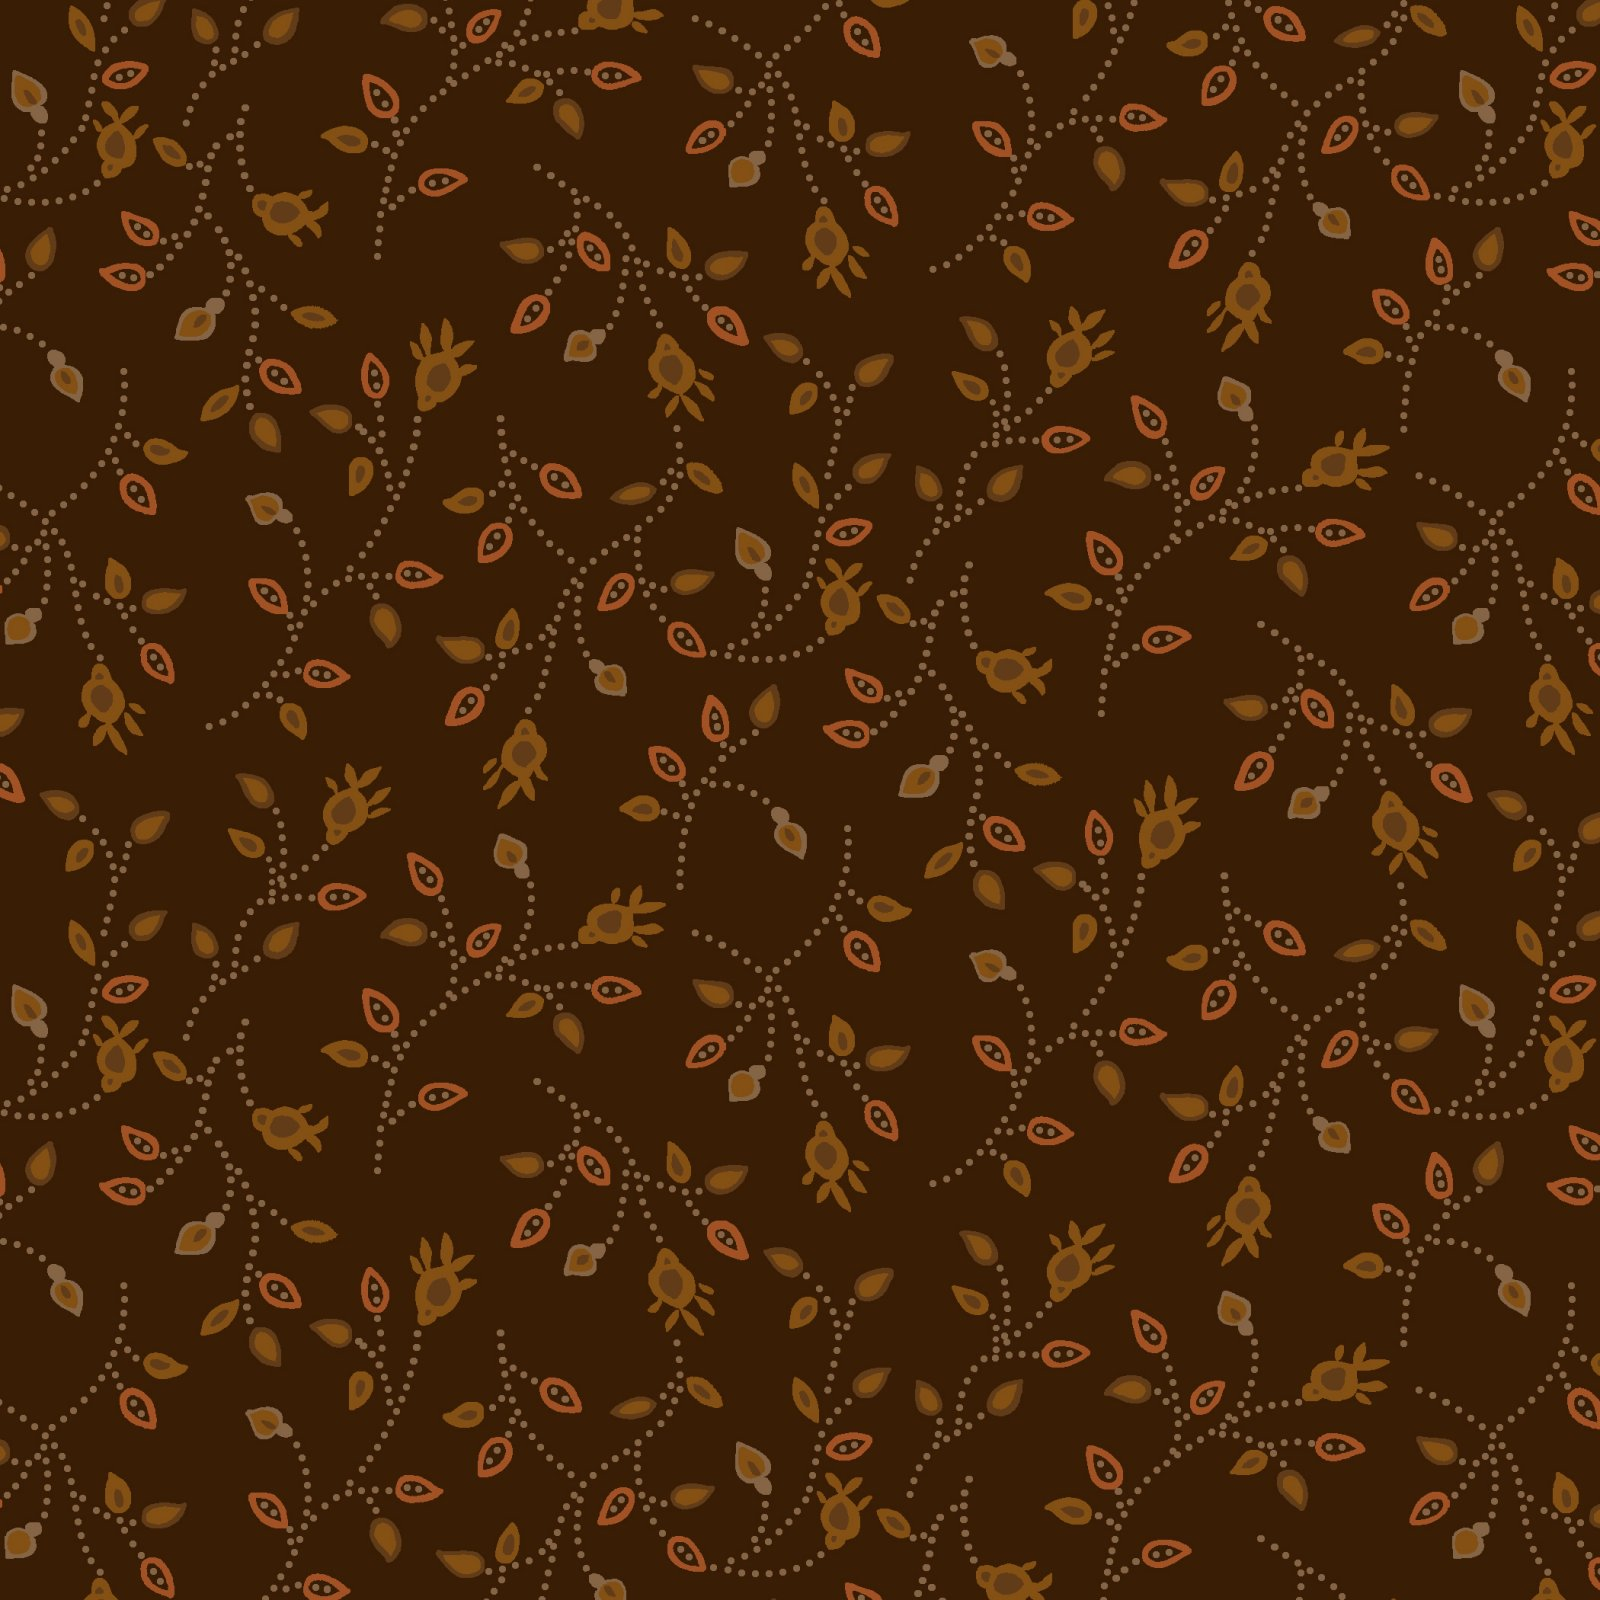 Buttermilk Autumn - 2278-38 * 1/2 yard